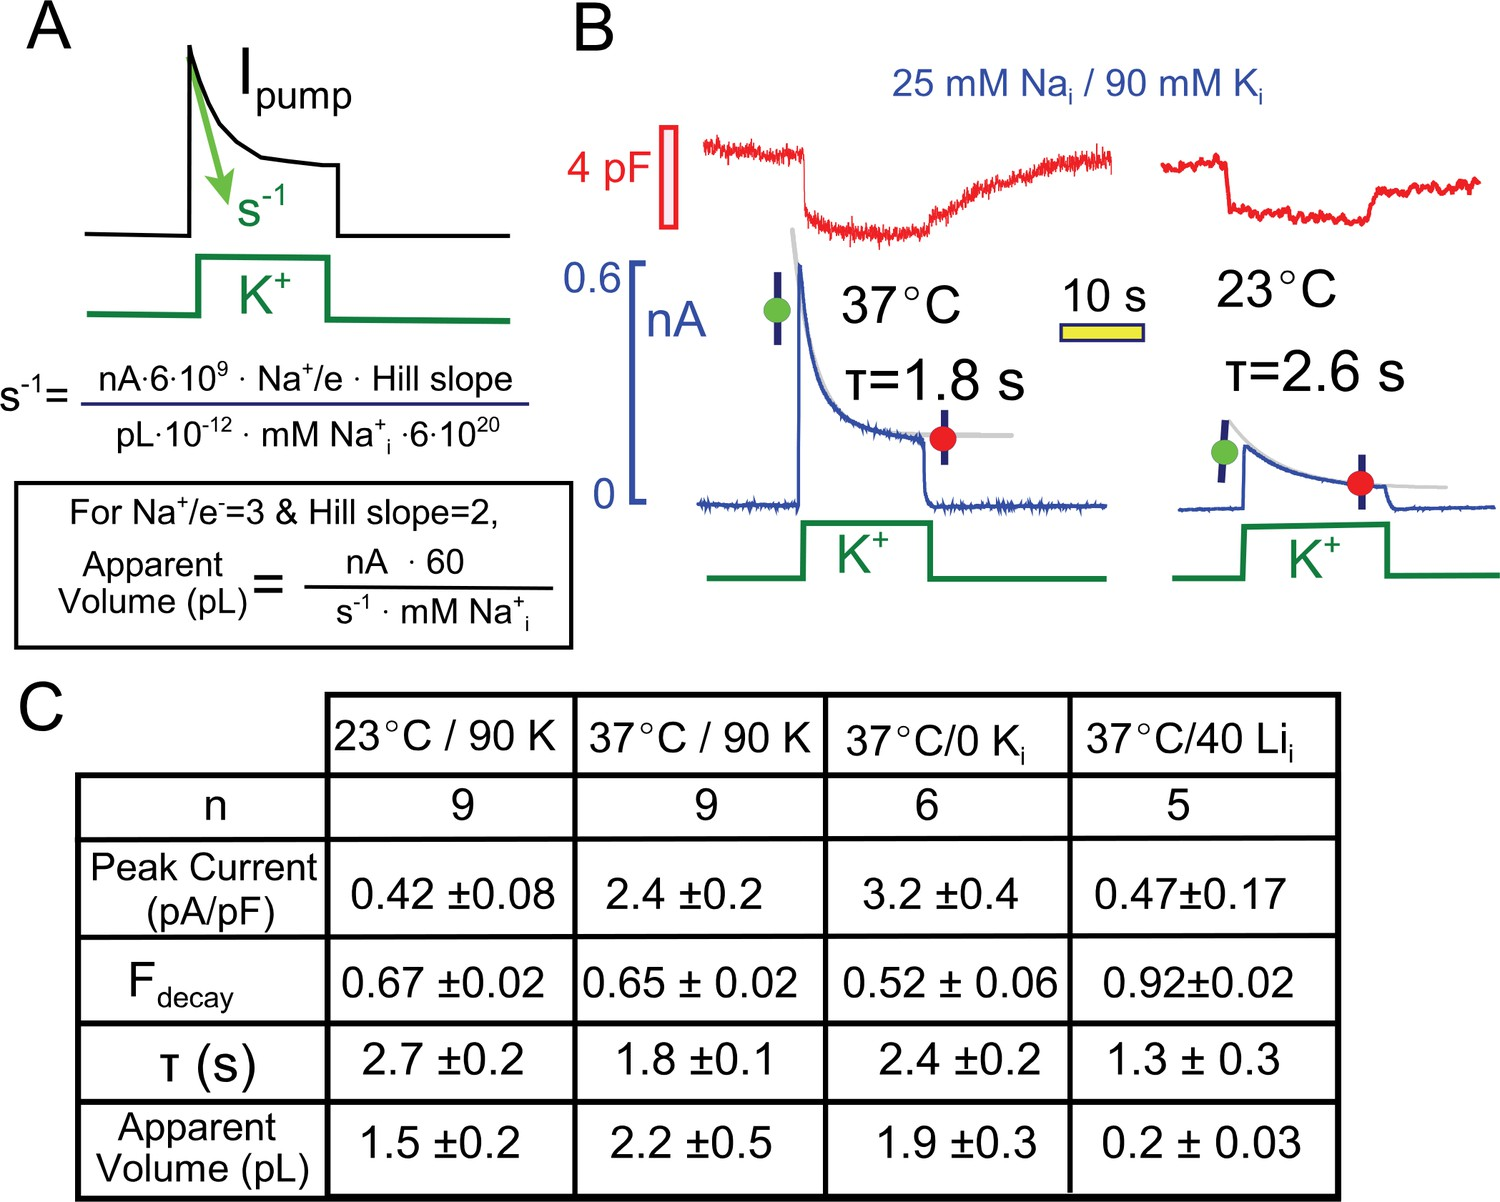 hight resolution of quantitative analysis of pump current decay in relation to predictions for cytoplasmic na depletion